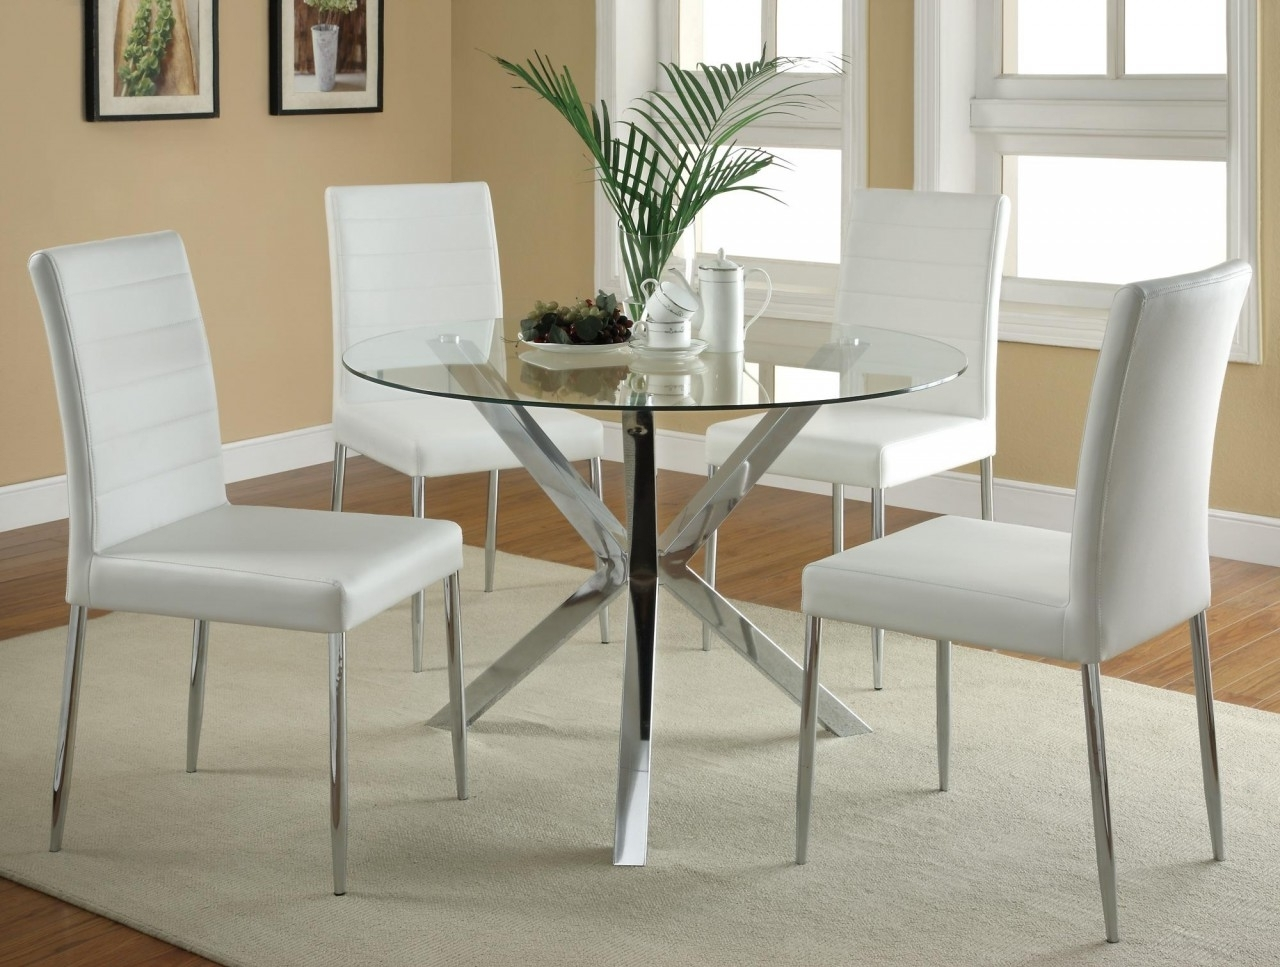 Preferred Modern Round Glass Dining Table With Chrome Polished Metal Leg As Inside Glass Dining Tables With Oak Legs (View 21 of 25)